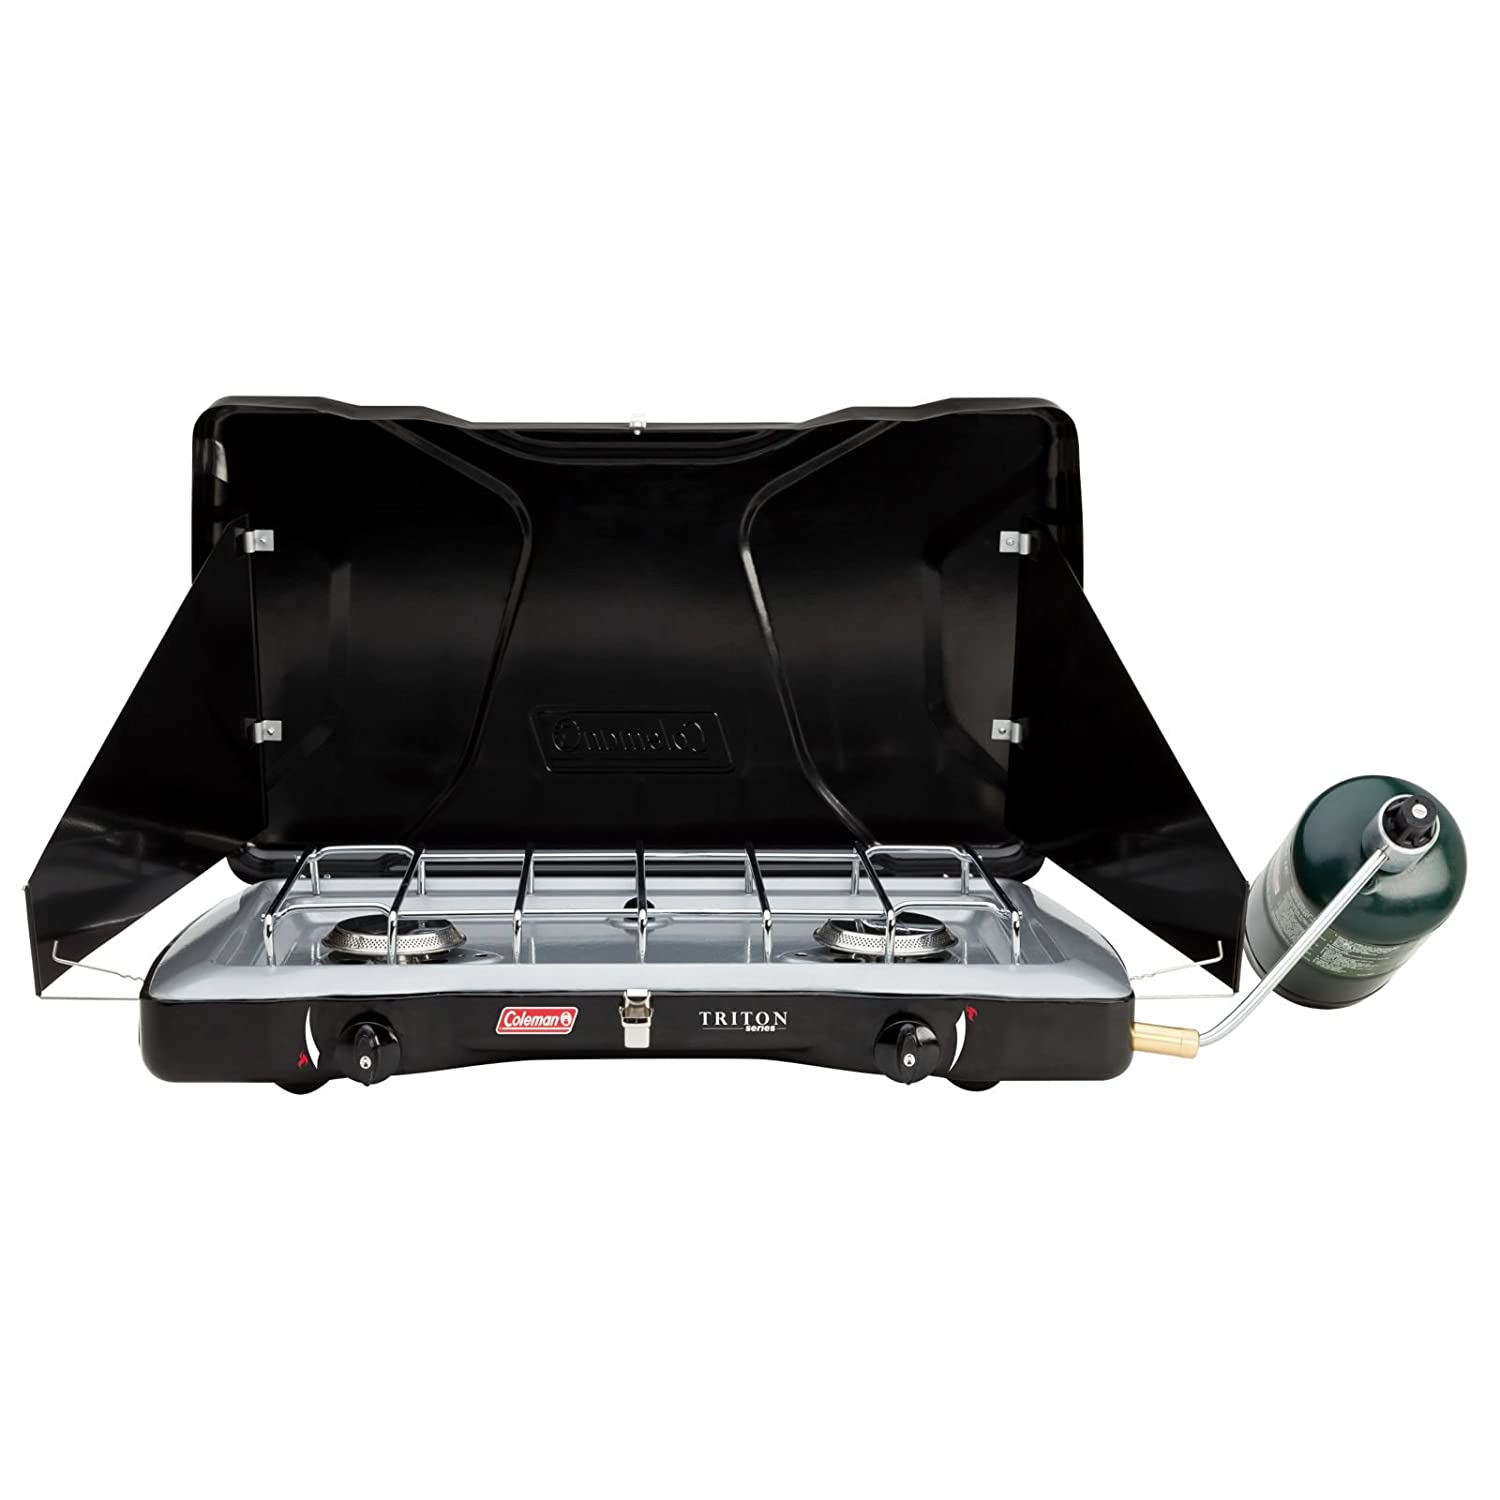 Amazon.com : Coleman Triton Series 2-Burner Stove : Camping Stoves ...